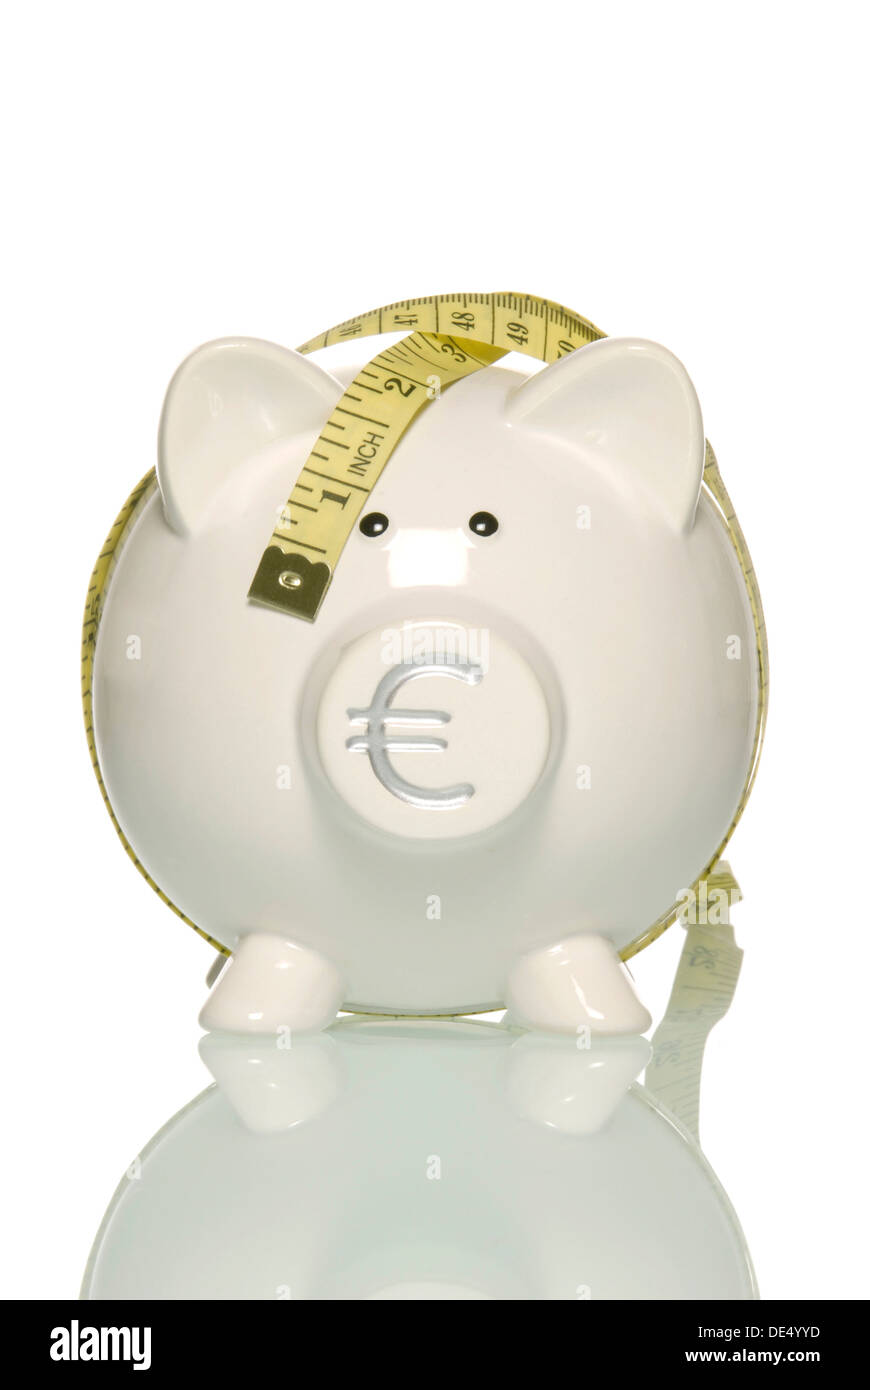 Piggy bank with Euro currency sign and tape measure, symbolic image for savings in Europe - Stock Image